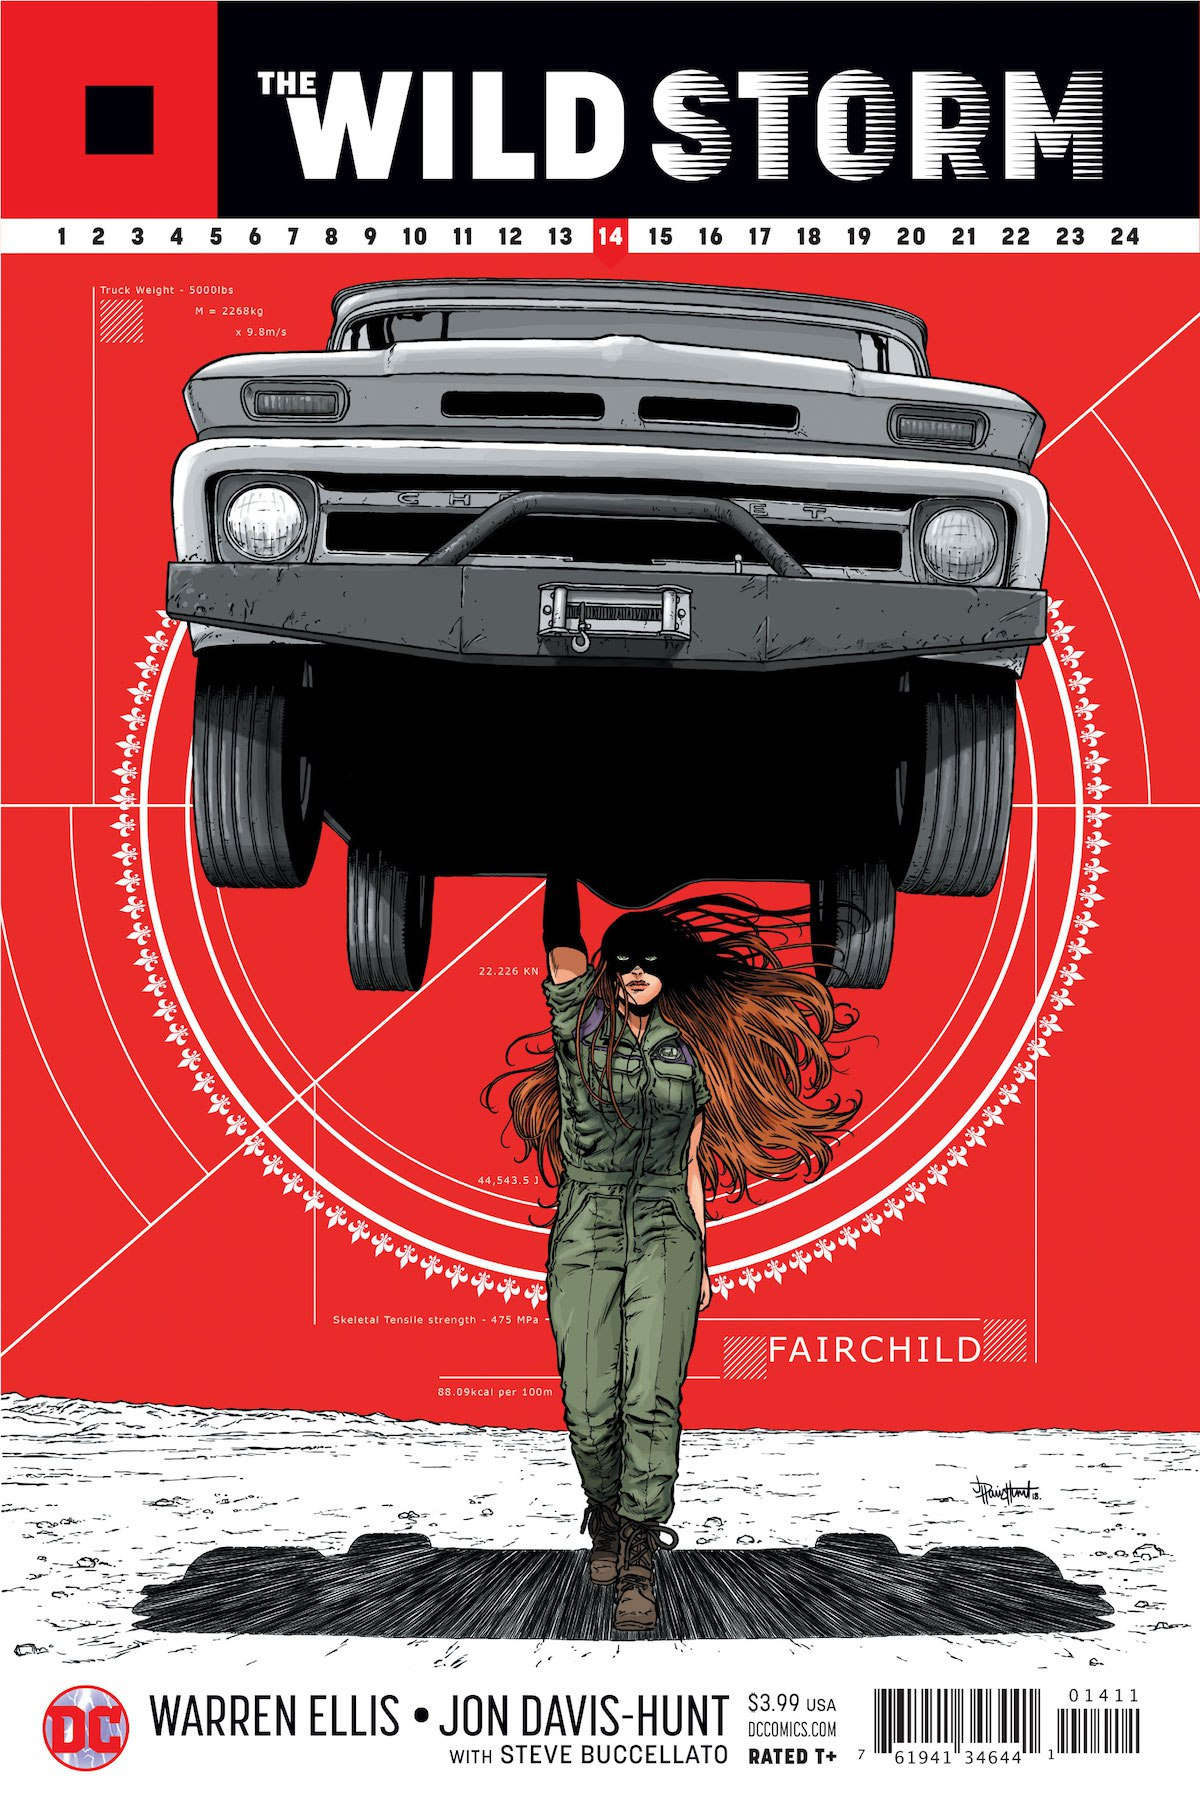 The Wild Storm #14 cover